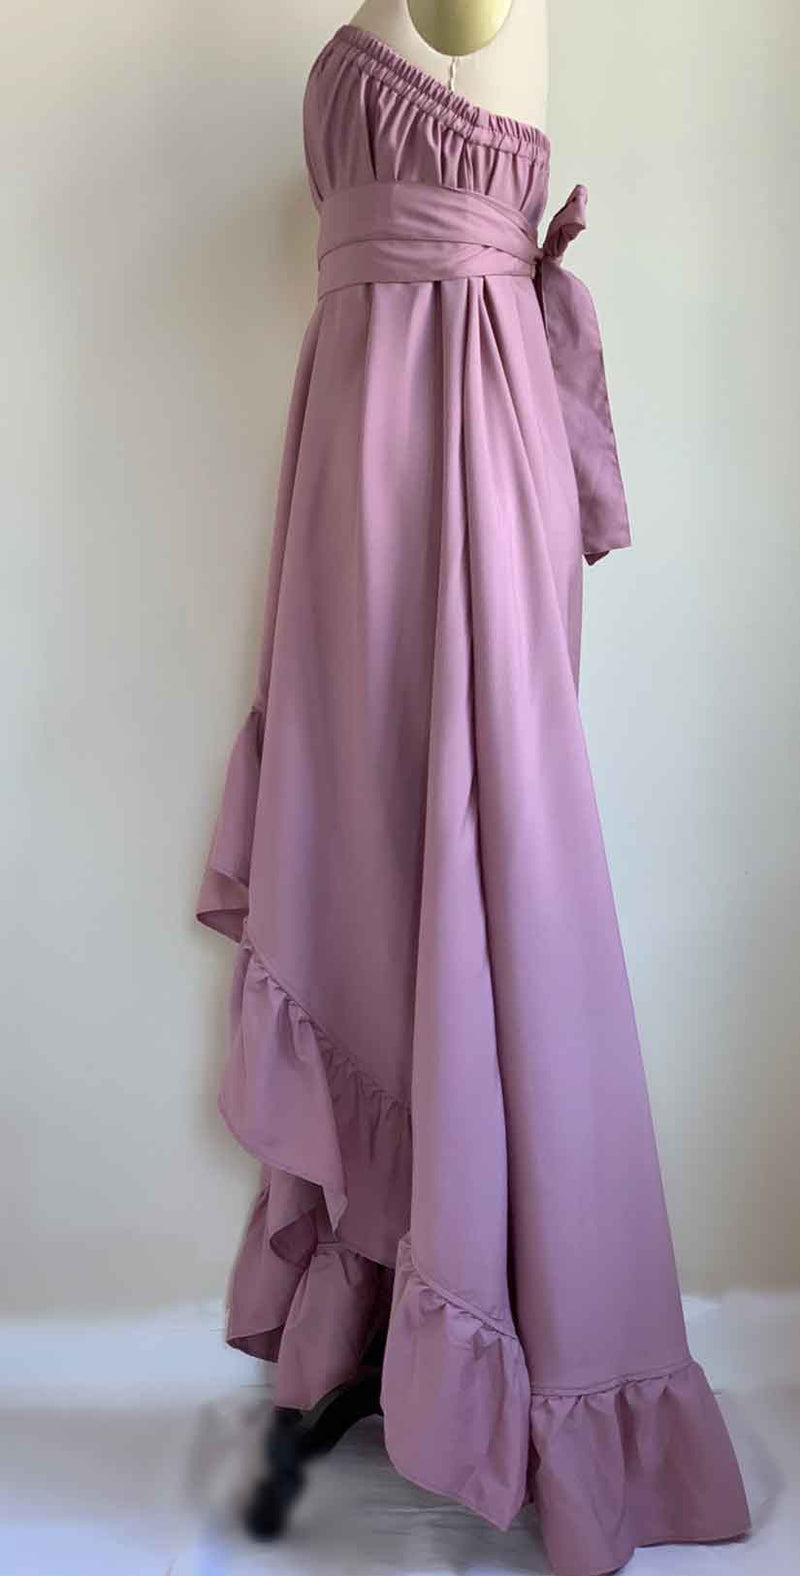 Camaroha Sutra Goddess Dress 5 Inch Ruffle in Mauve side